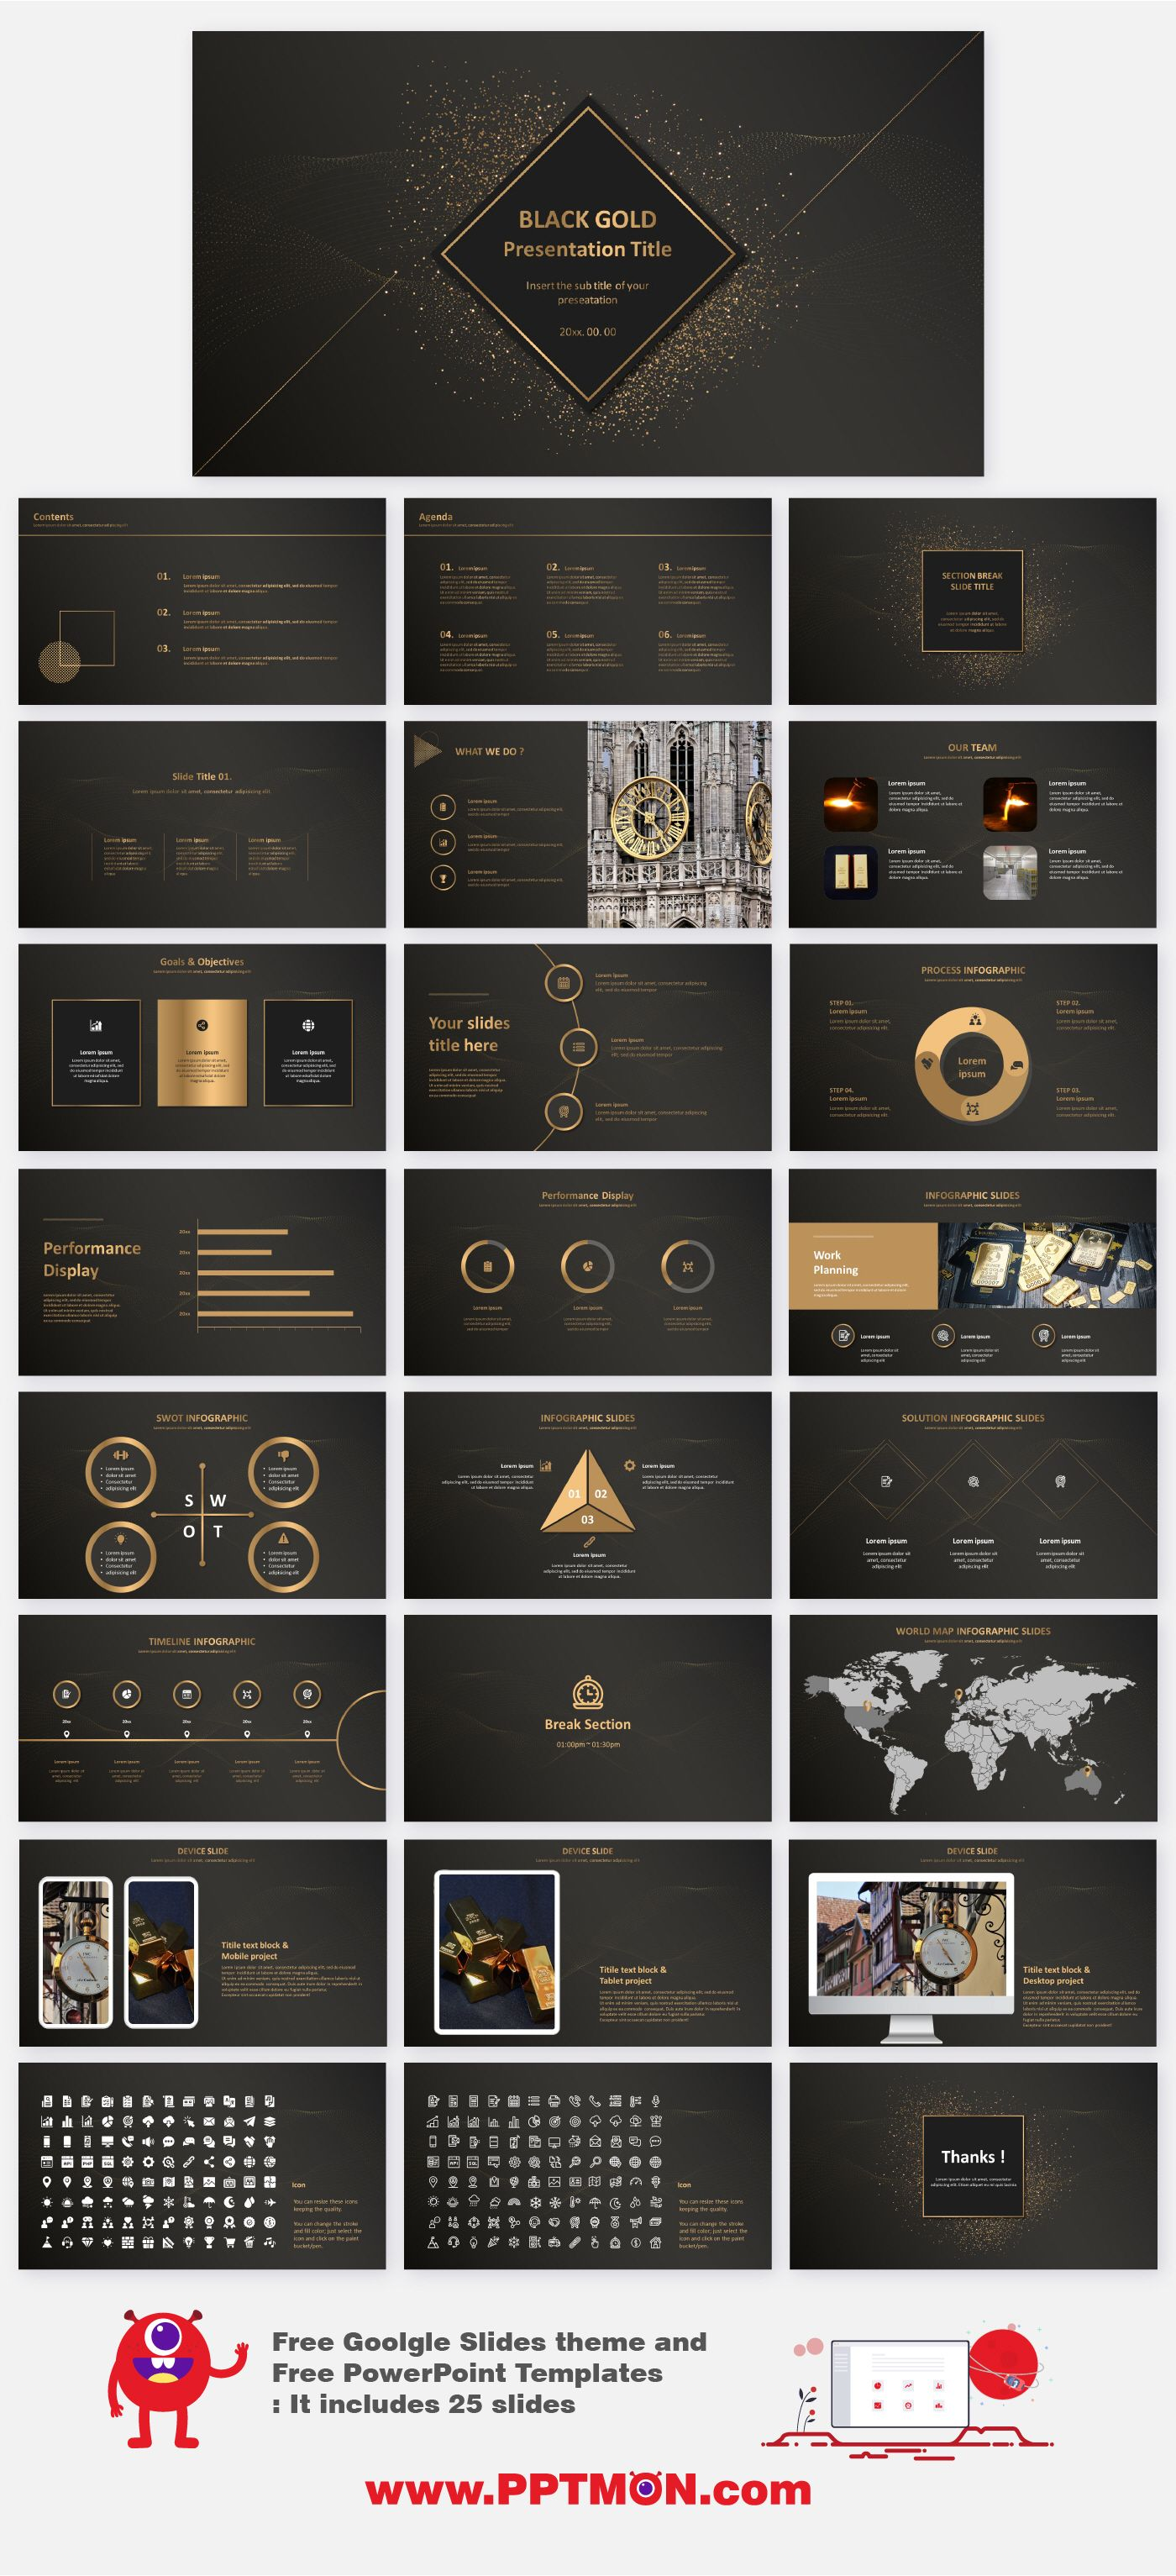 Black And Gold Free Powerpoint Google Presentation Powerpoint Presentation Design Powerpoint Presentation Themes Powerpoint Design Templates